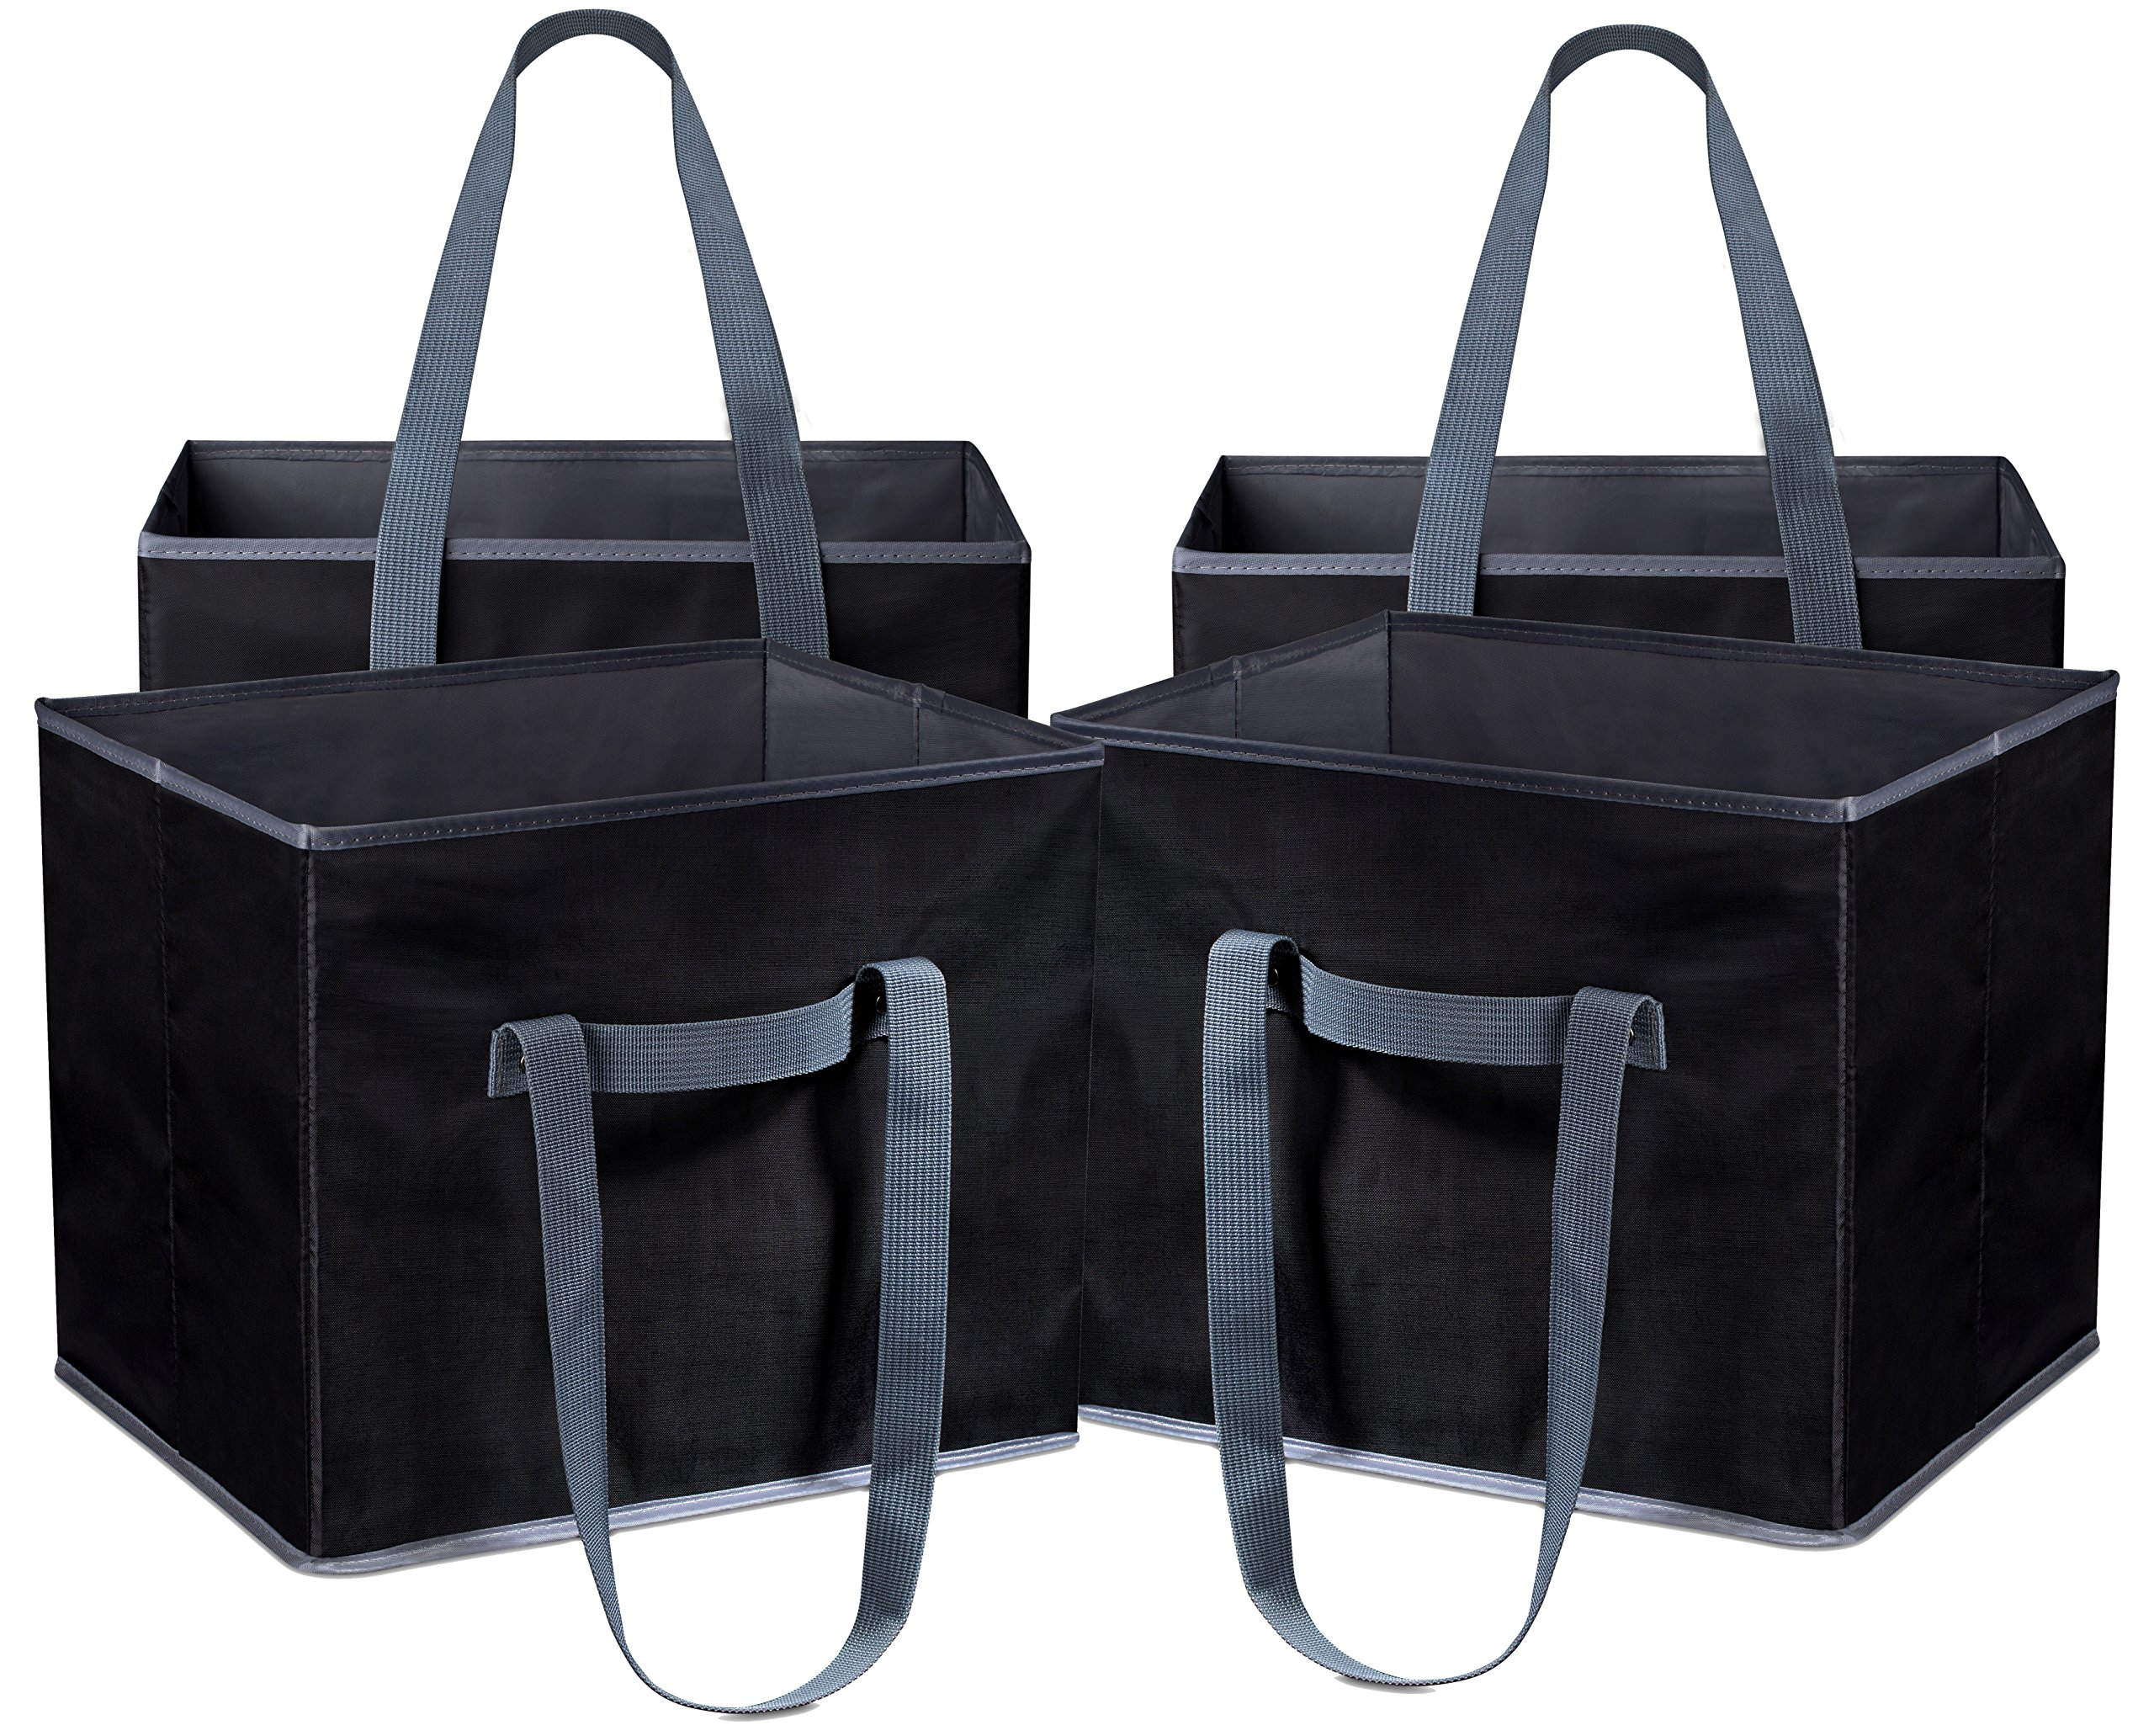 Reusable Shopping Cube Grocery Bag - These Sturdy Tote Bags will Keep your Car Trunk Groceries in Place. Long Handles to Carry in Hand or Over Shoulder. Folds Flat for Convenient Storage. (Set of 4) by Masirs